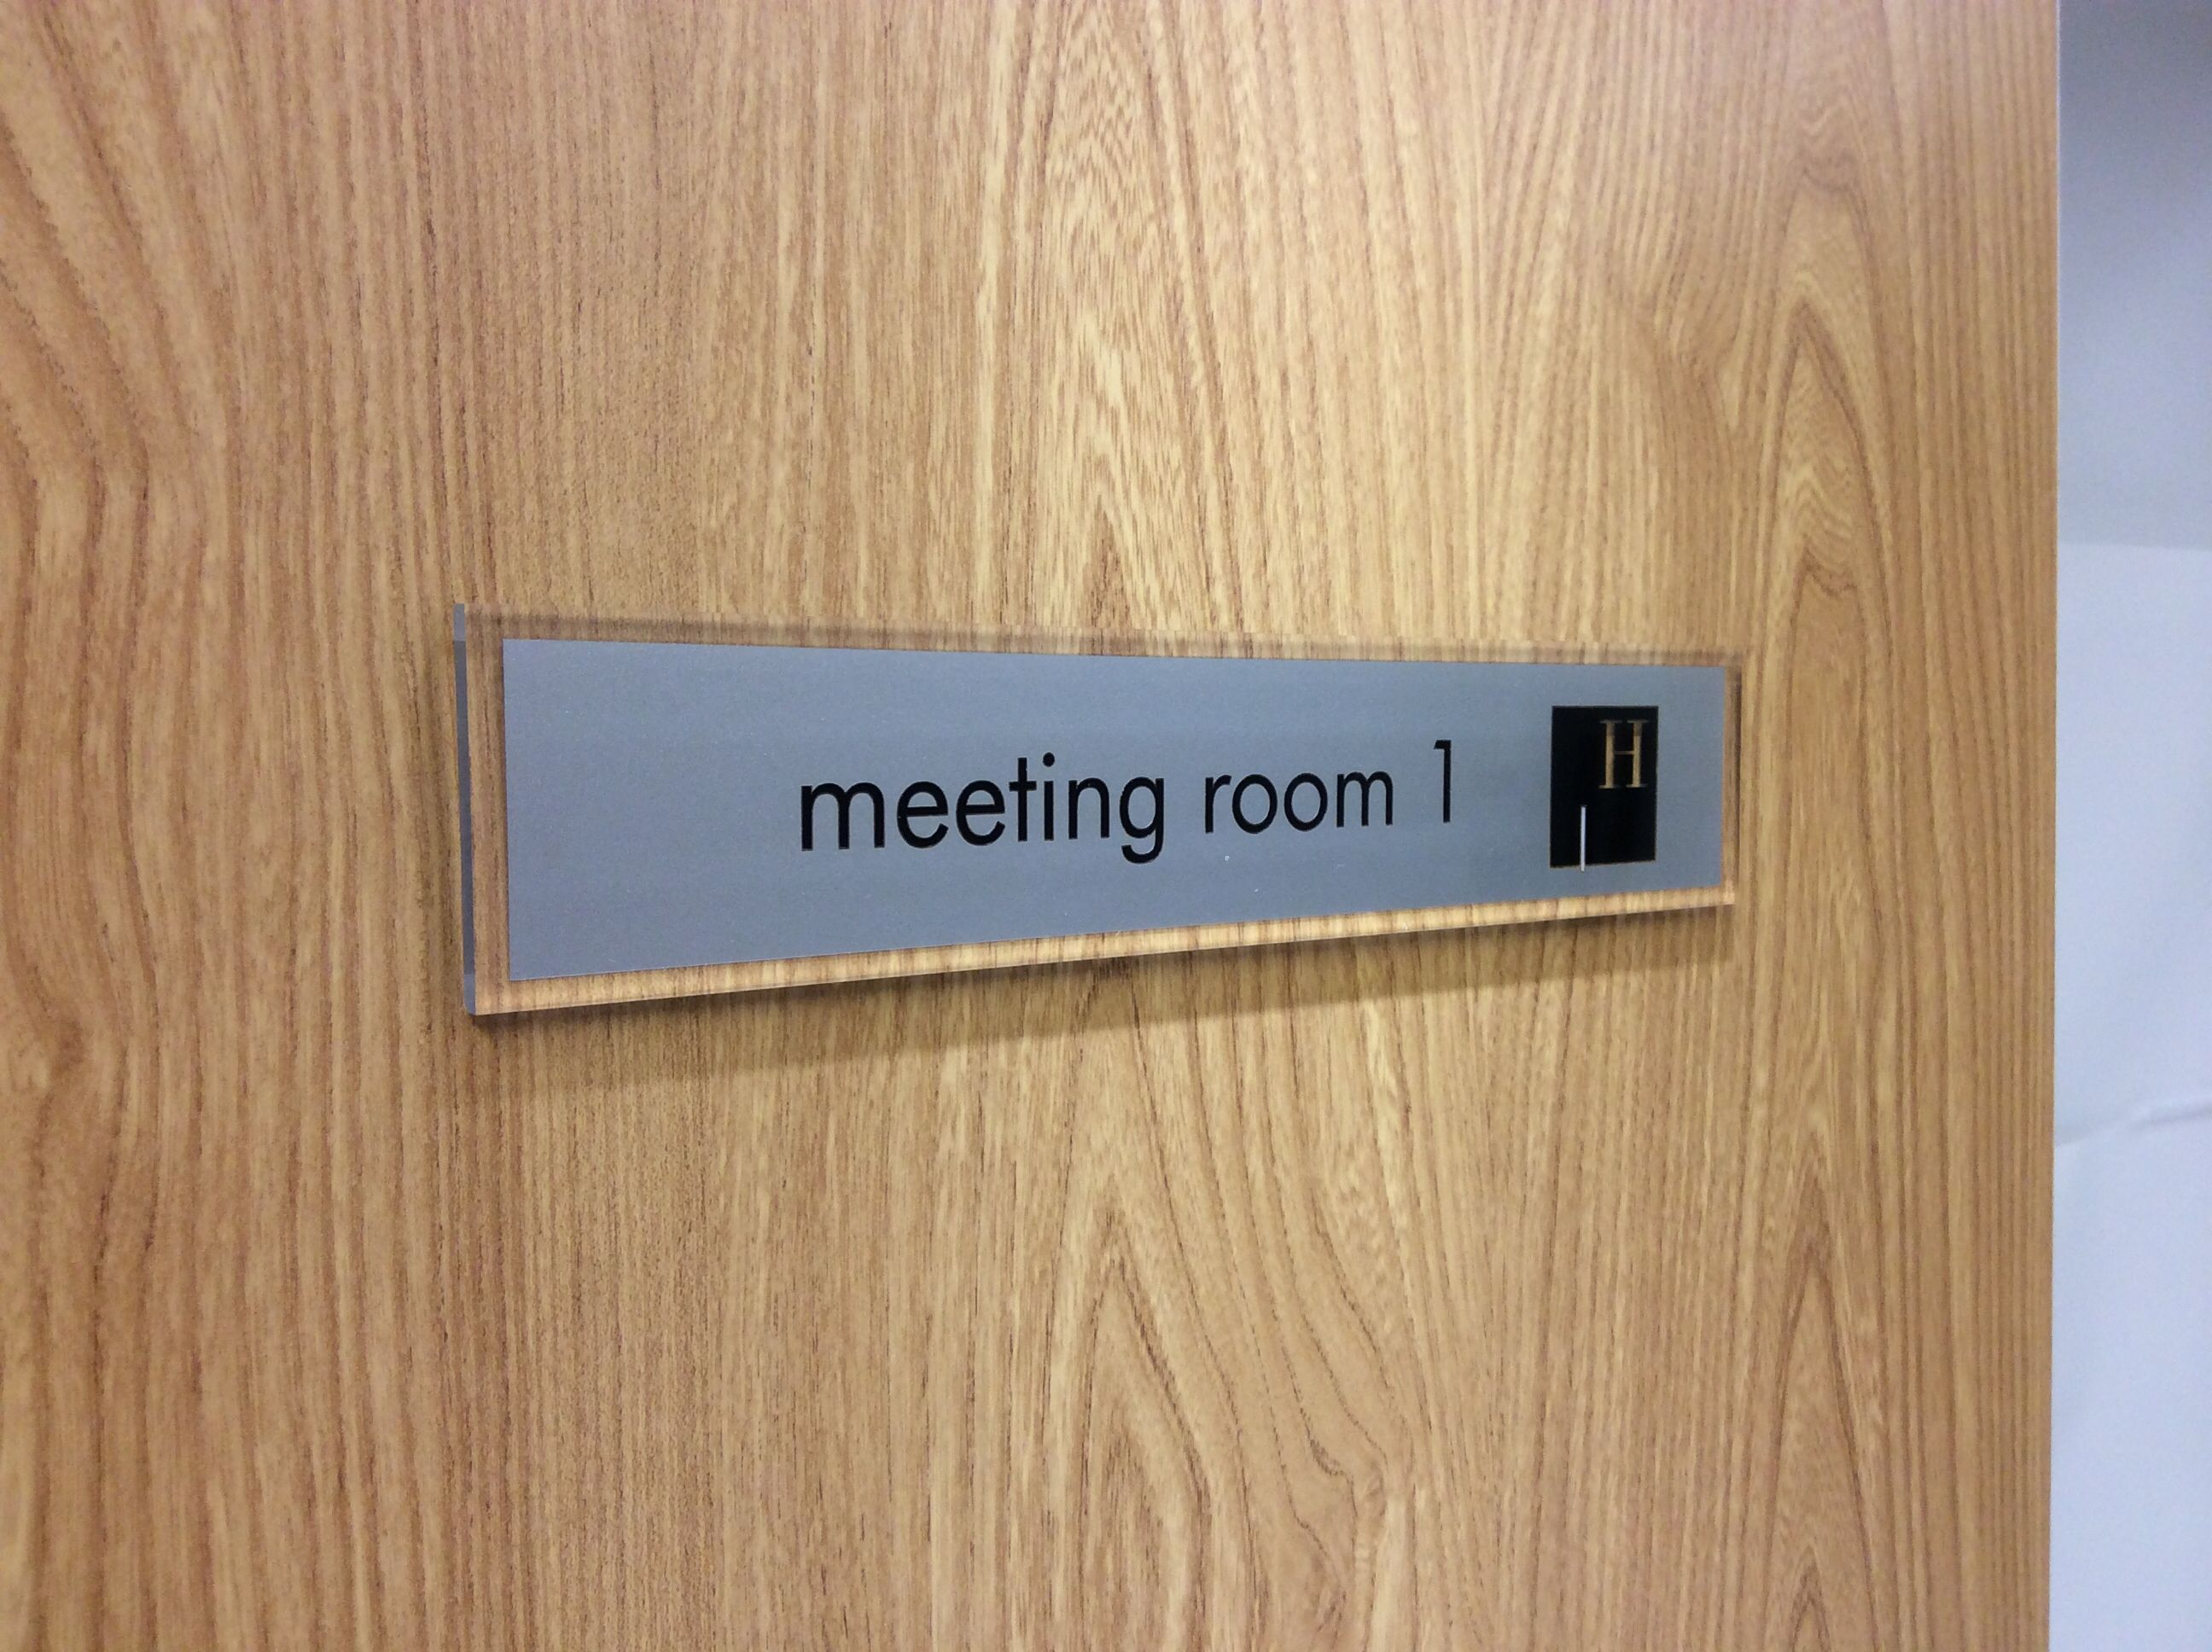 Meeting Room Door Signs HttpwwwdesignagecomOfficesignsphp - Conference room door signs for offices